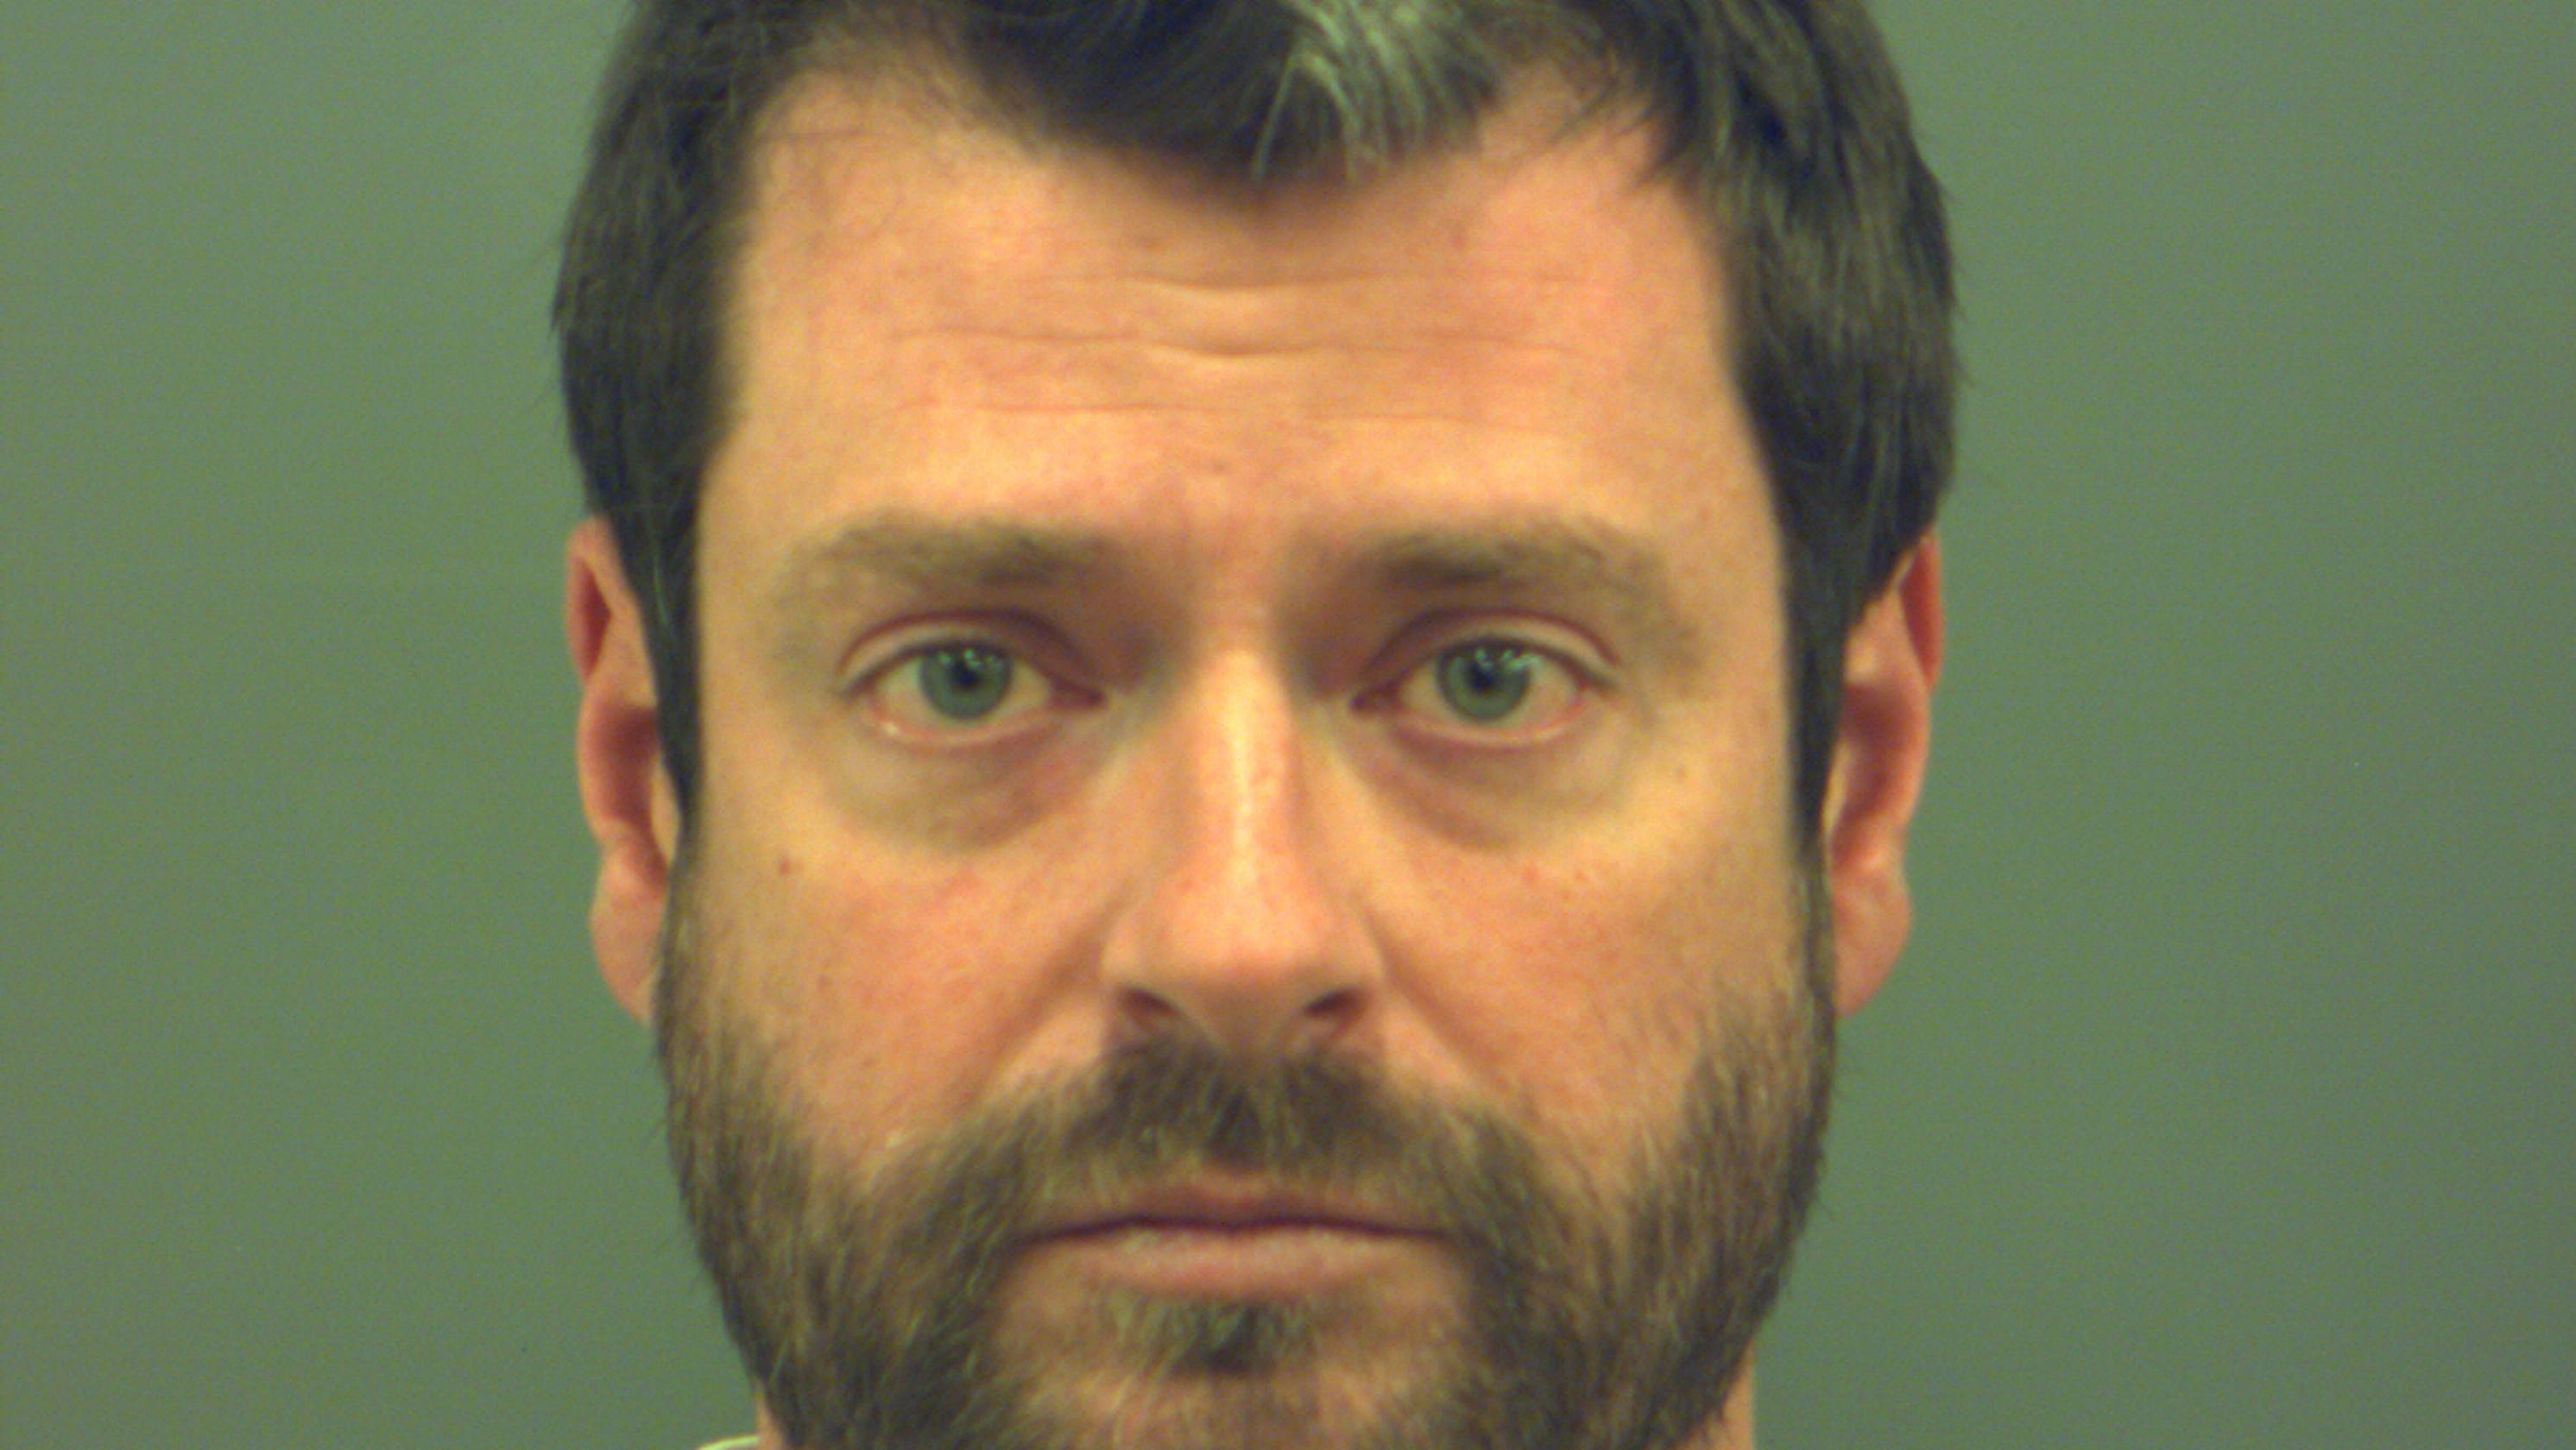 City Plan Commission, Appraisal District board member arrested